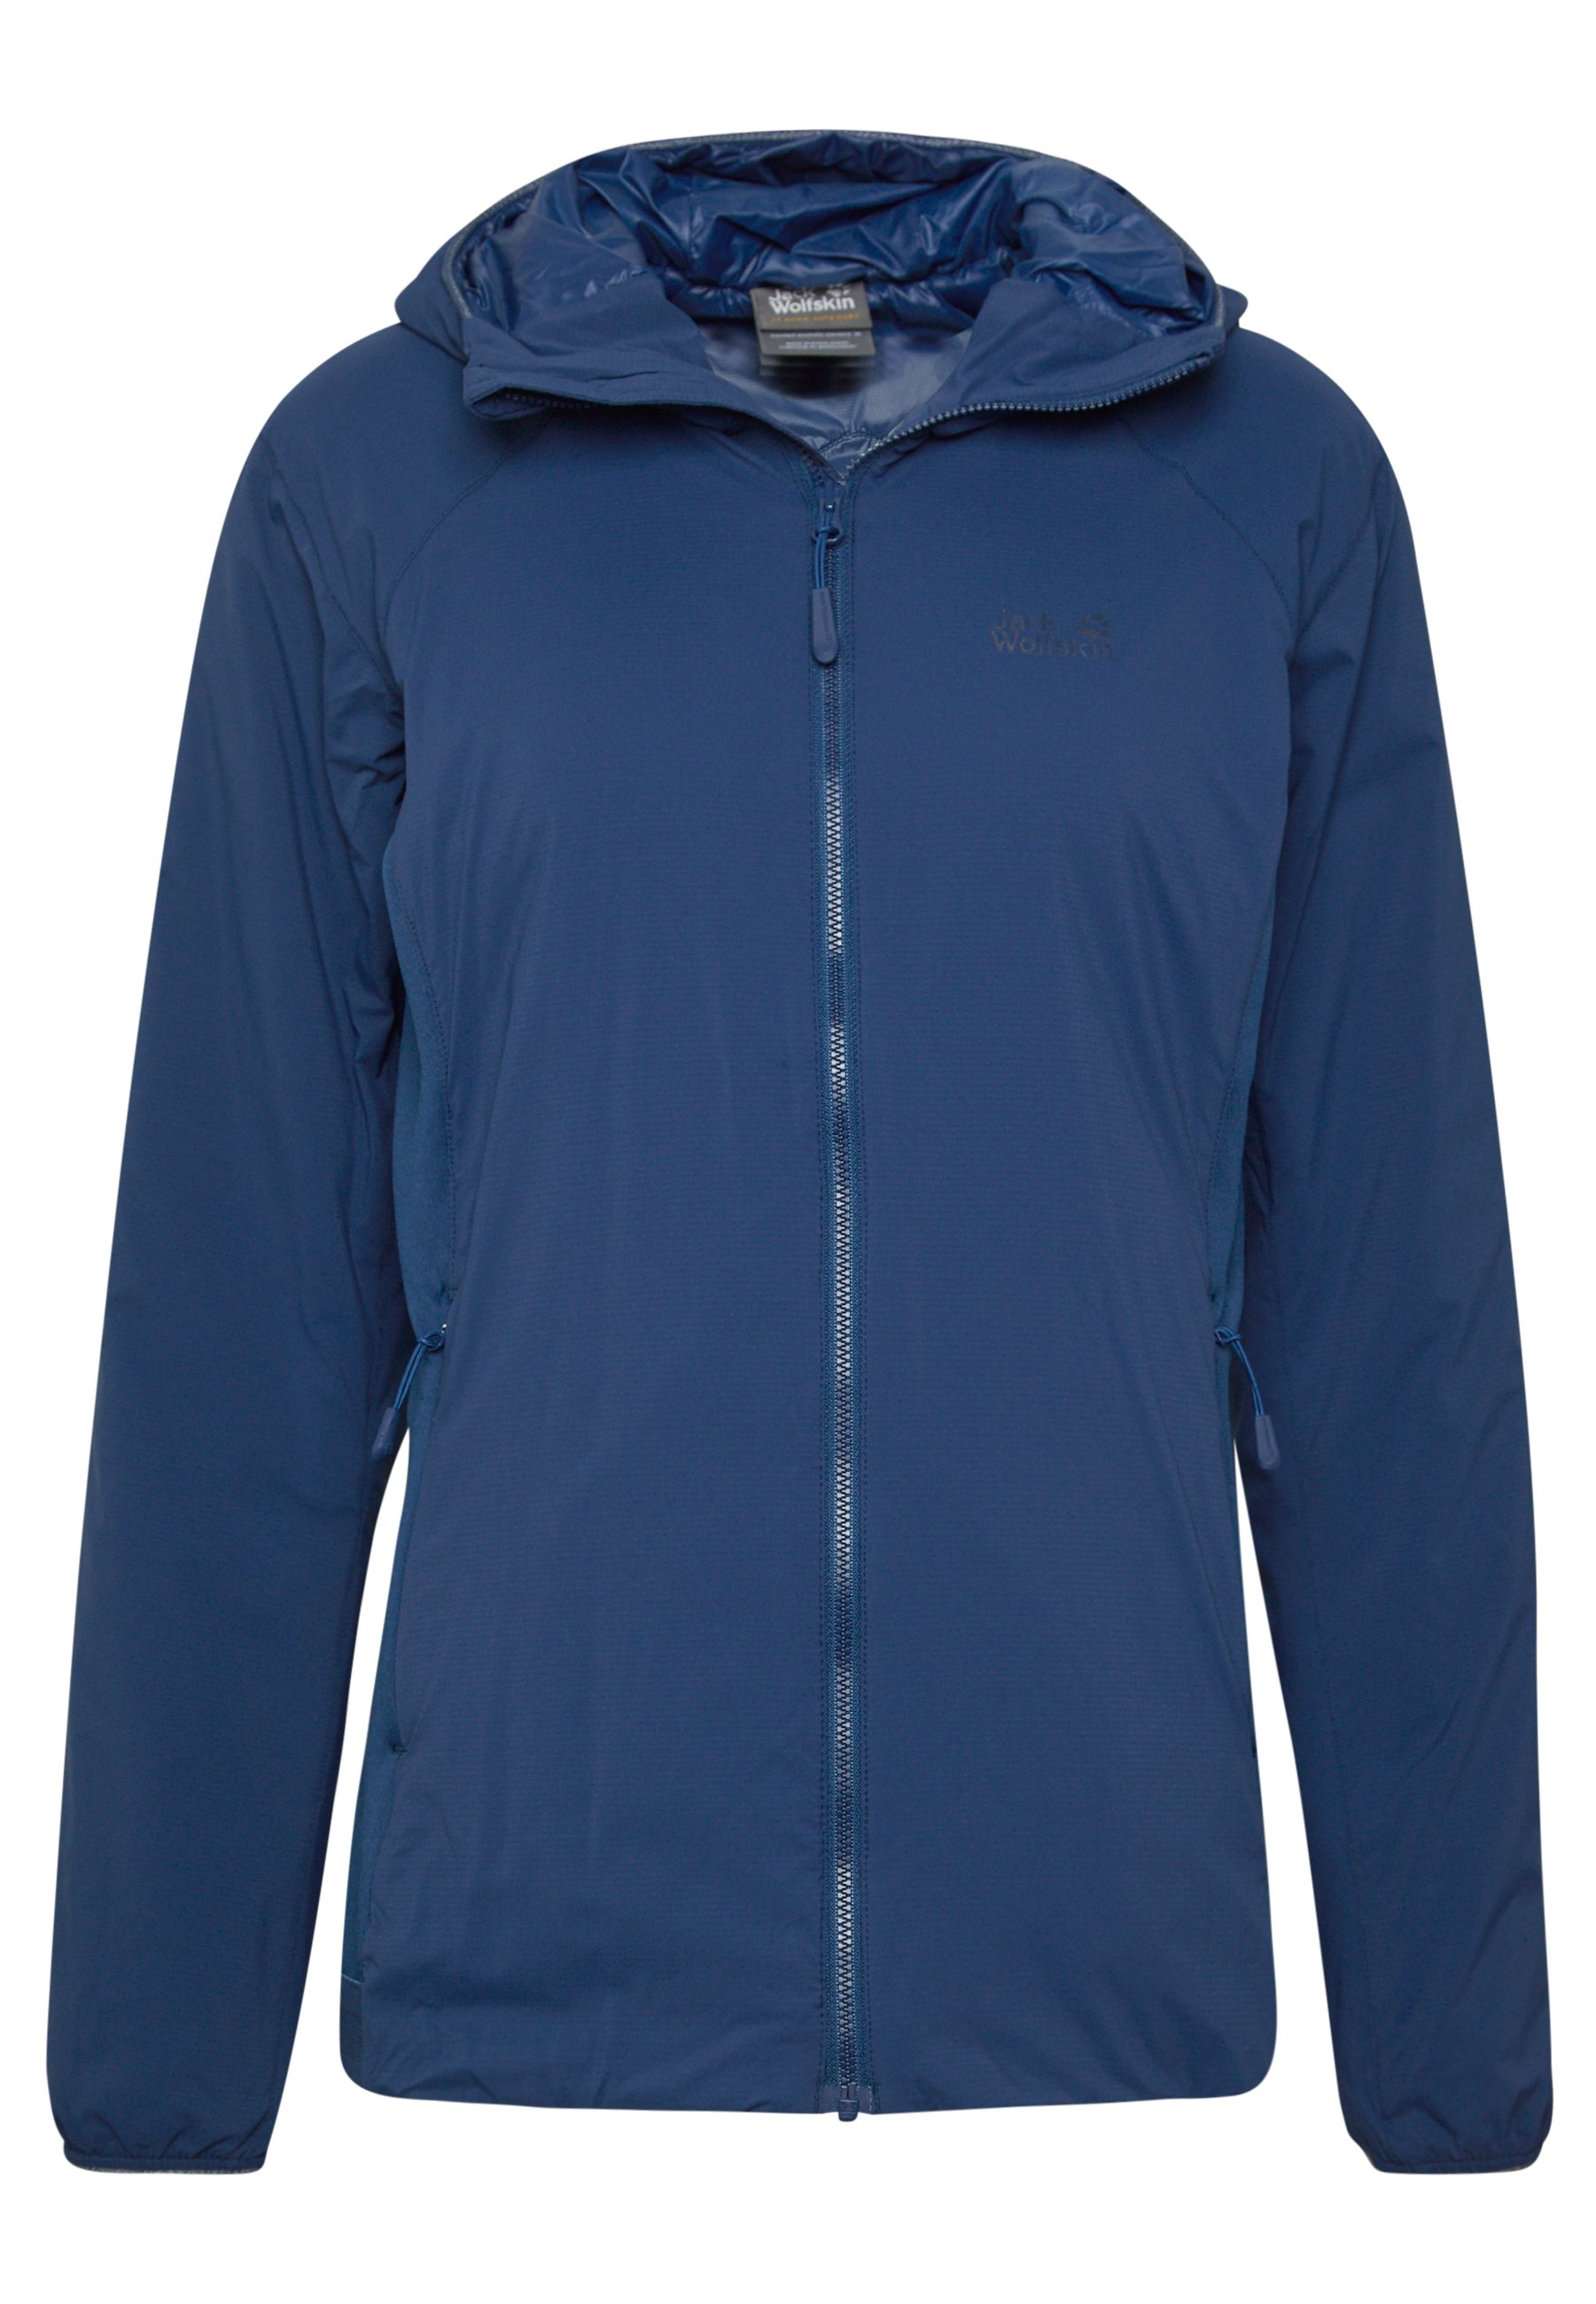 OPOURI PEAK JACKET Outdoorjacke dark indigo